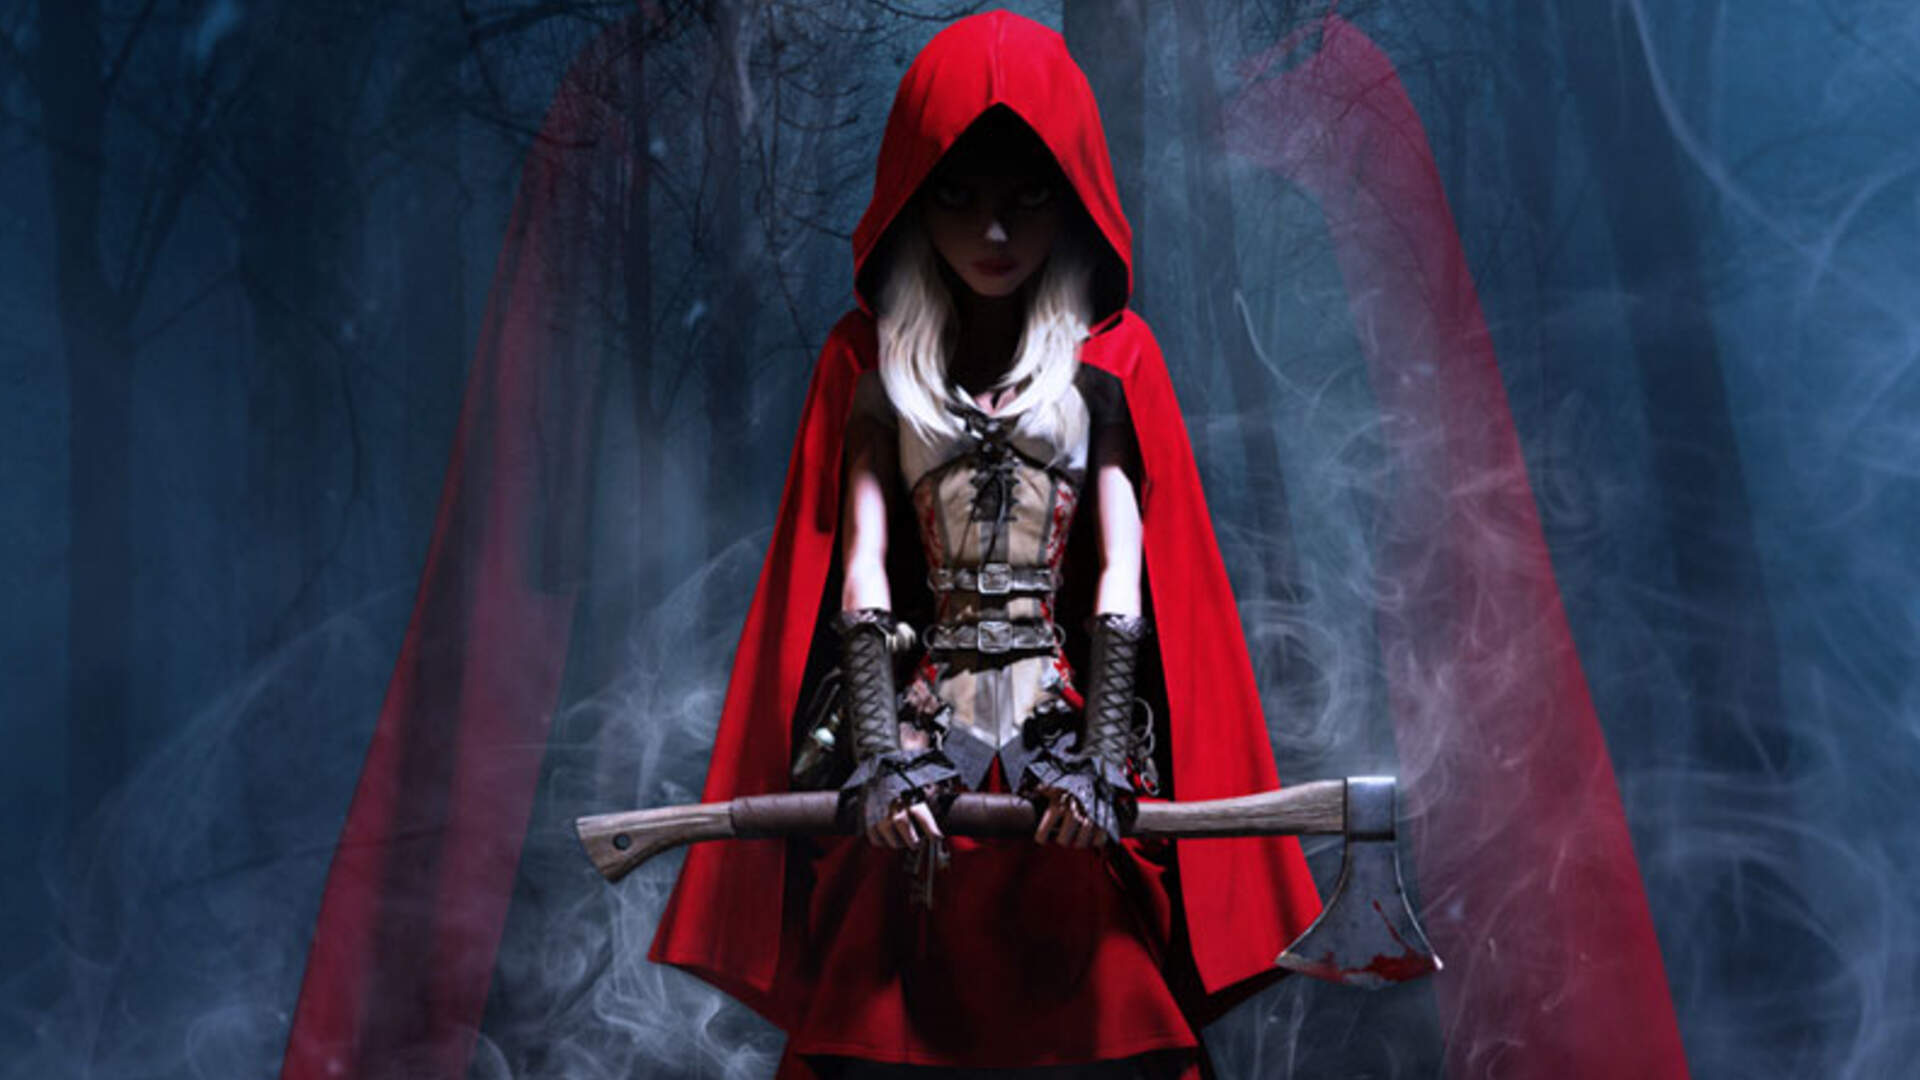 Woolfe: The Red Hood Diaries Looks Deliciously Dark